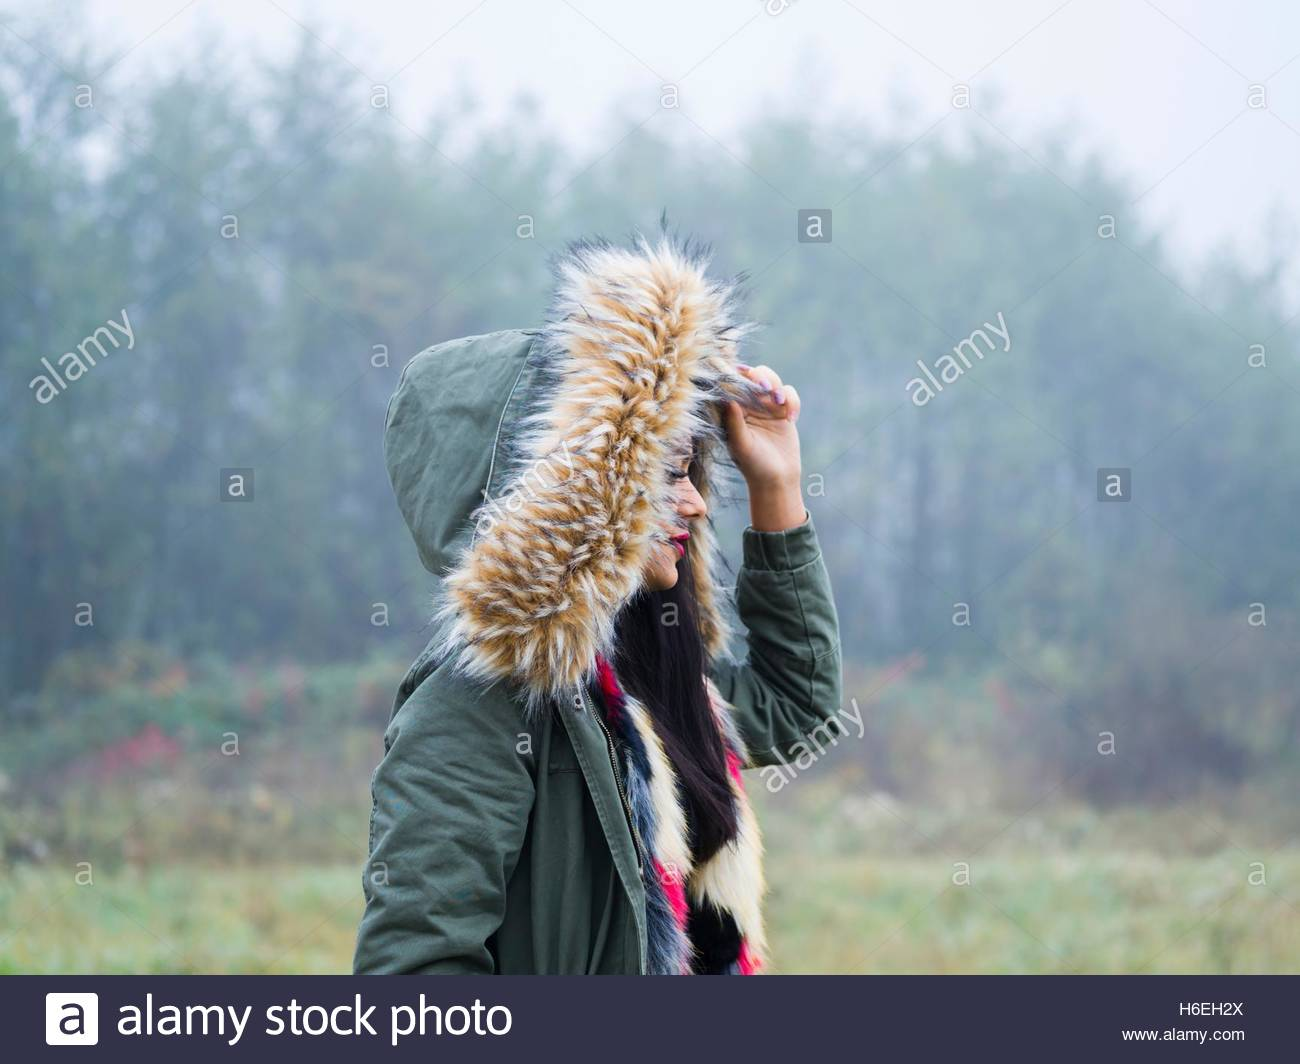 Under hood cold weather walking walk girl outdoors foggy day side view forest in nature hoodie single Stock Photo